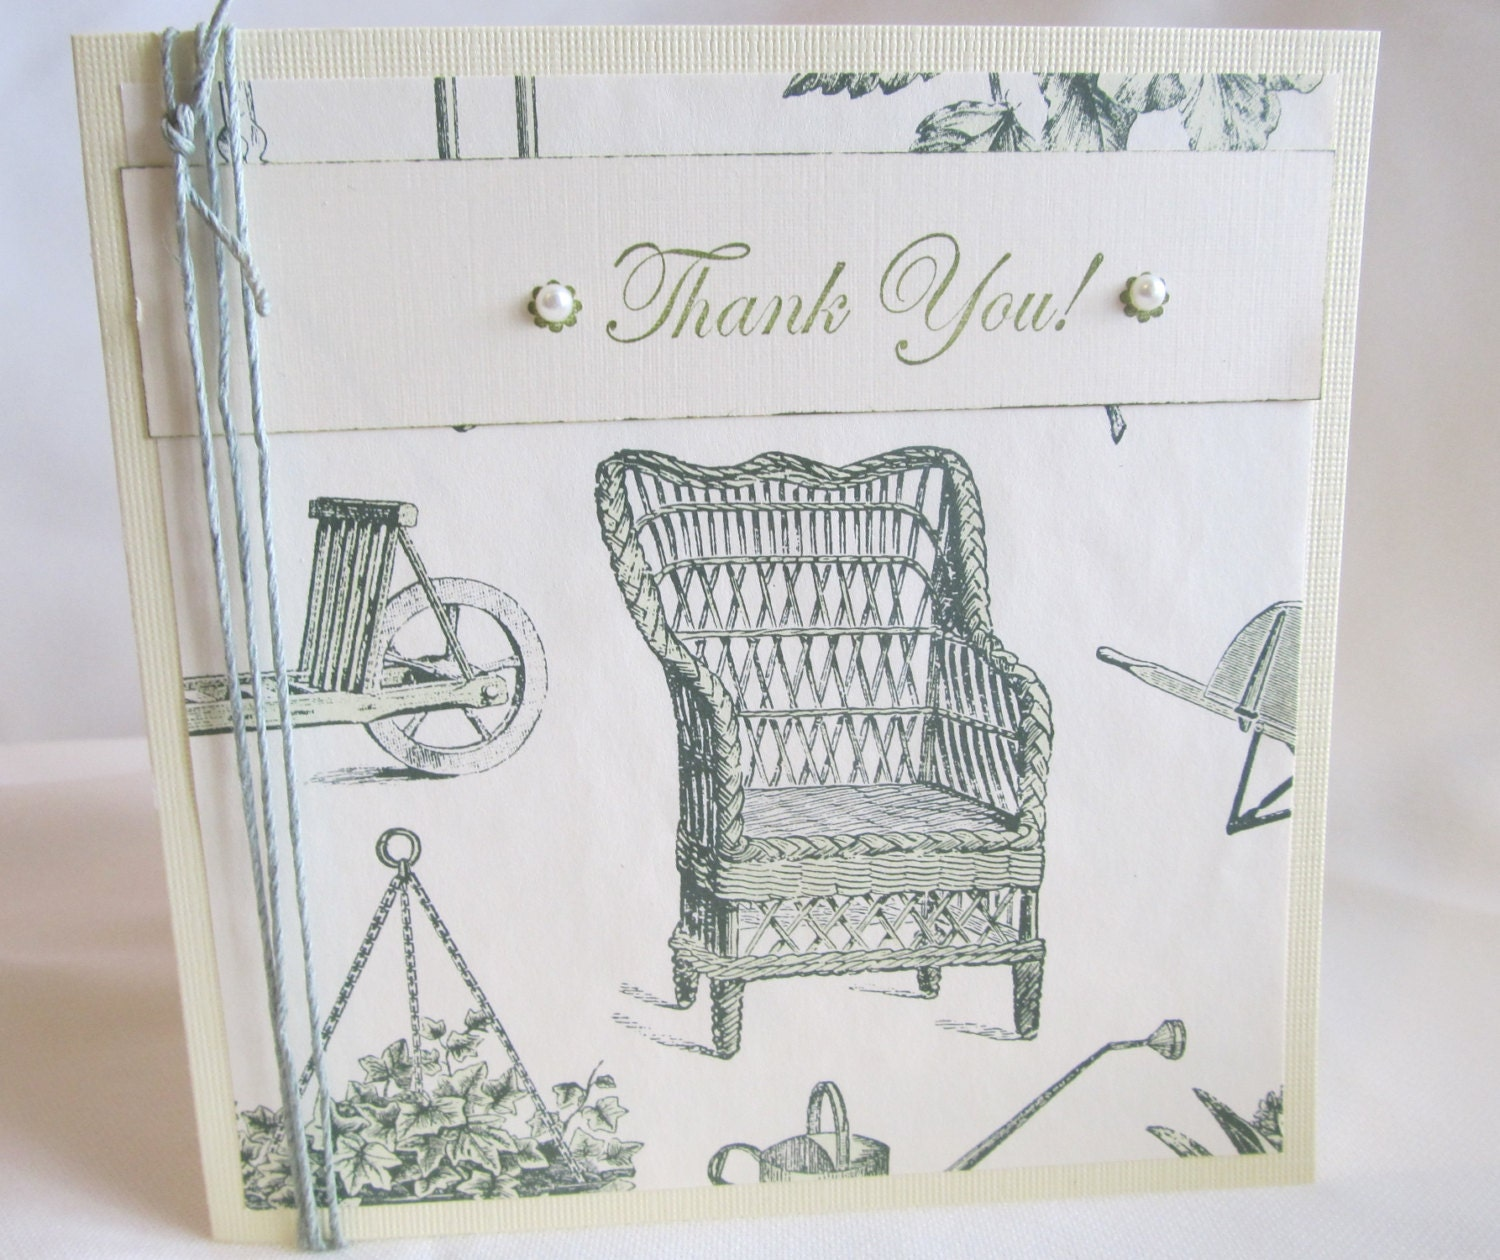 Thank You Card - Handmade Thank You Card - Hand Stamped Card - Cottage Chic Style Card - Pale Yellow Card - Garden Theme Card - Rustic Chic - PrettyByrdDesigns